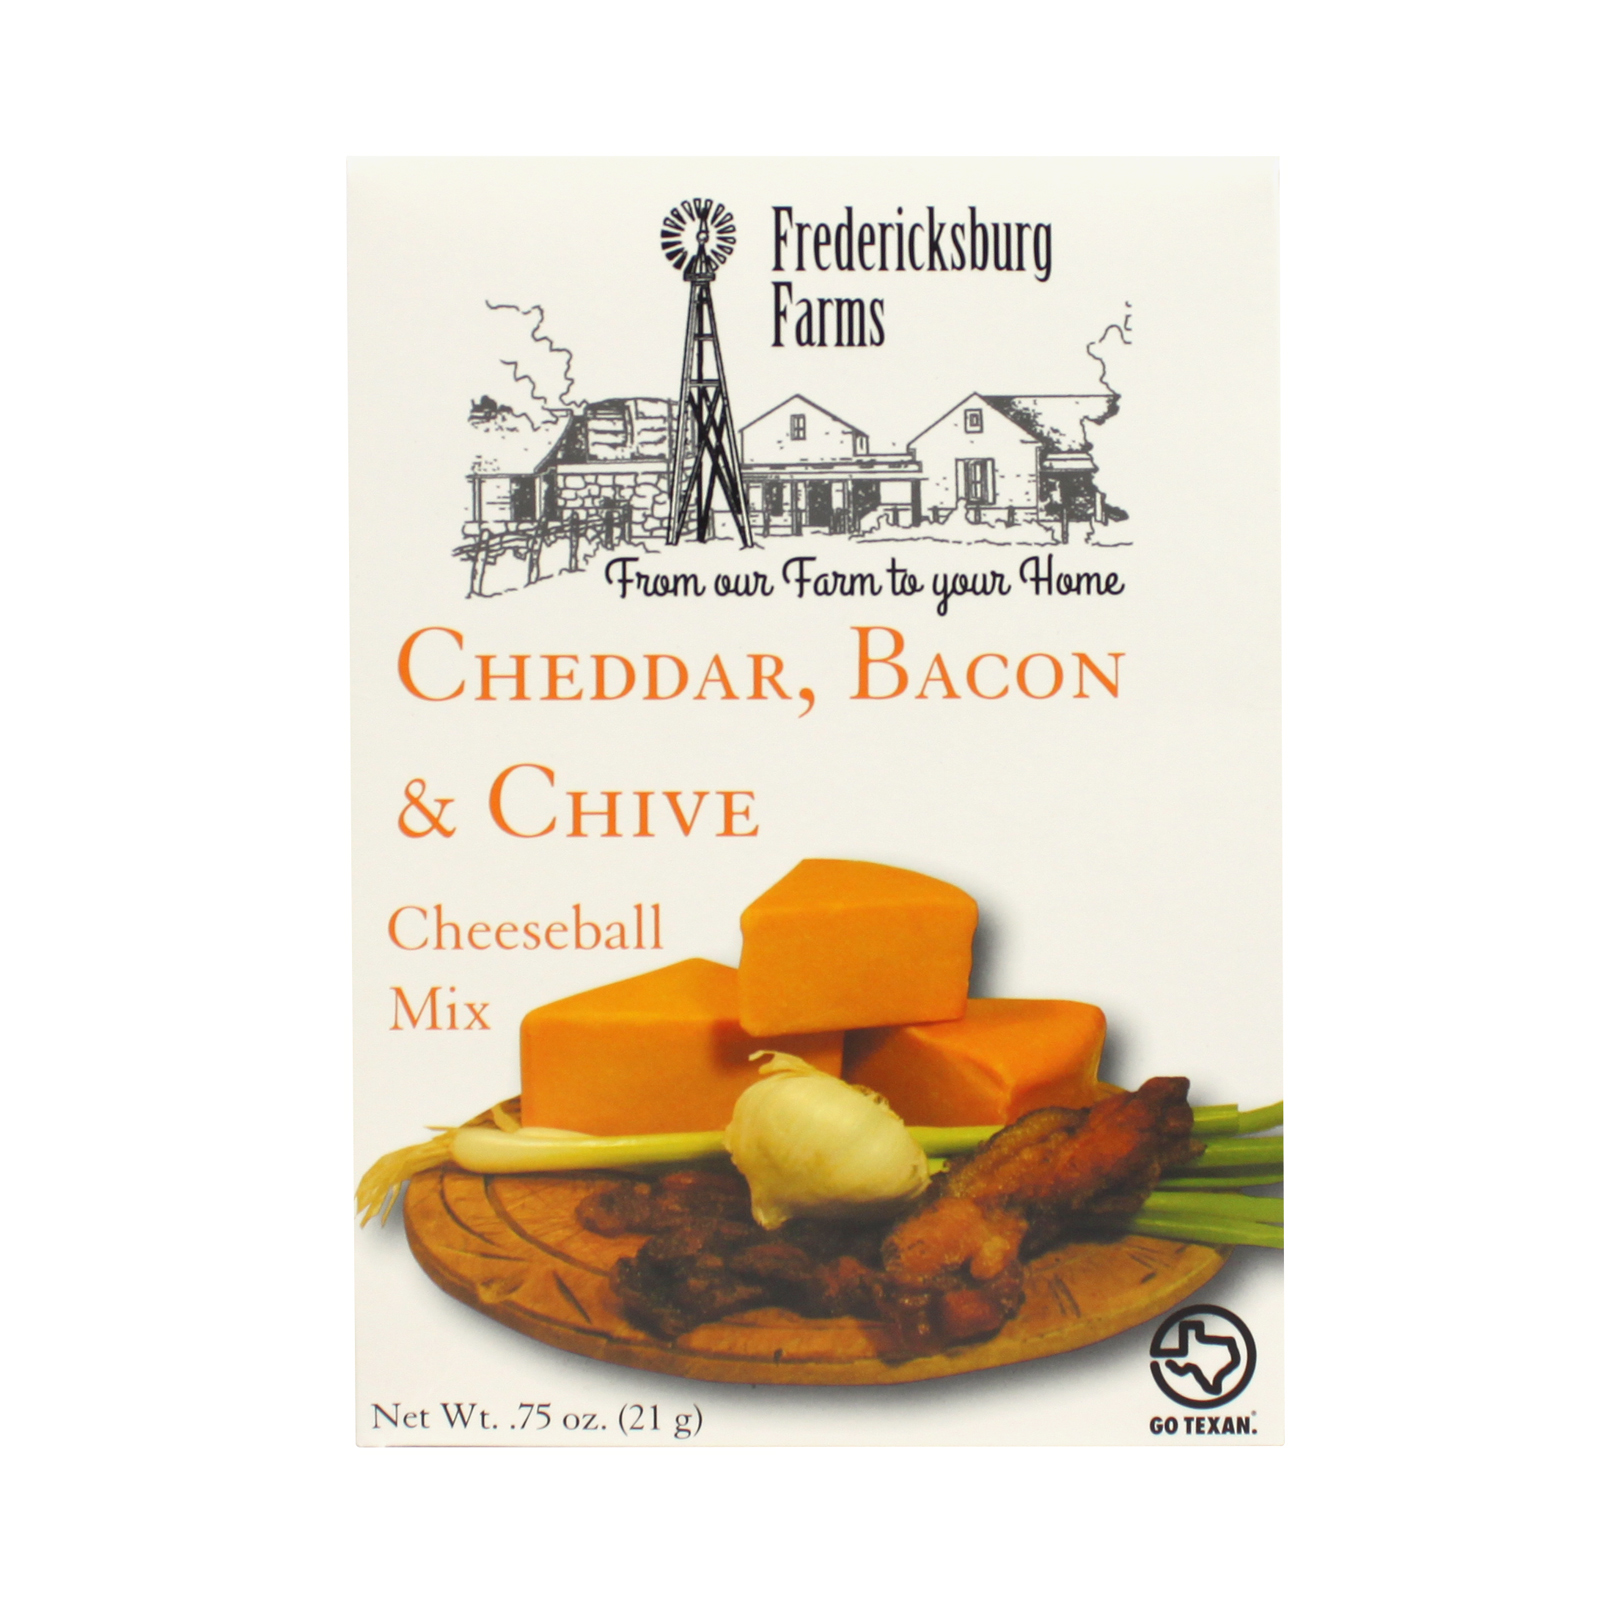 Fredericksburg Farms Cheeseball Mix Cheddar Bacon & Chive